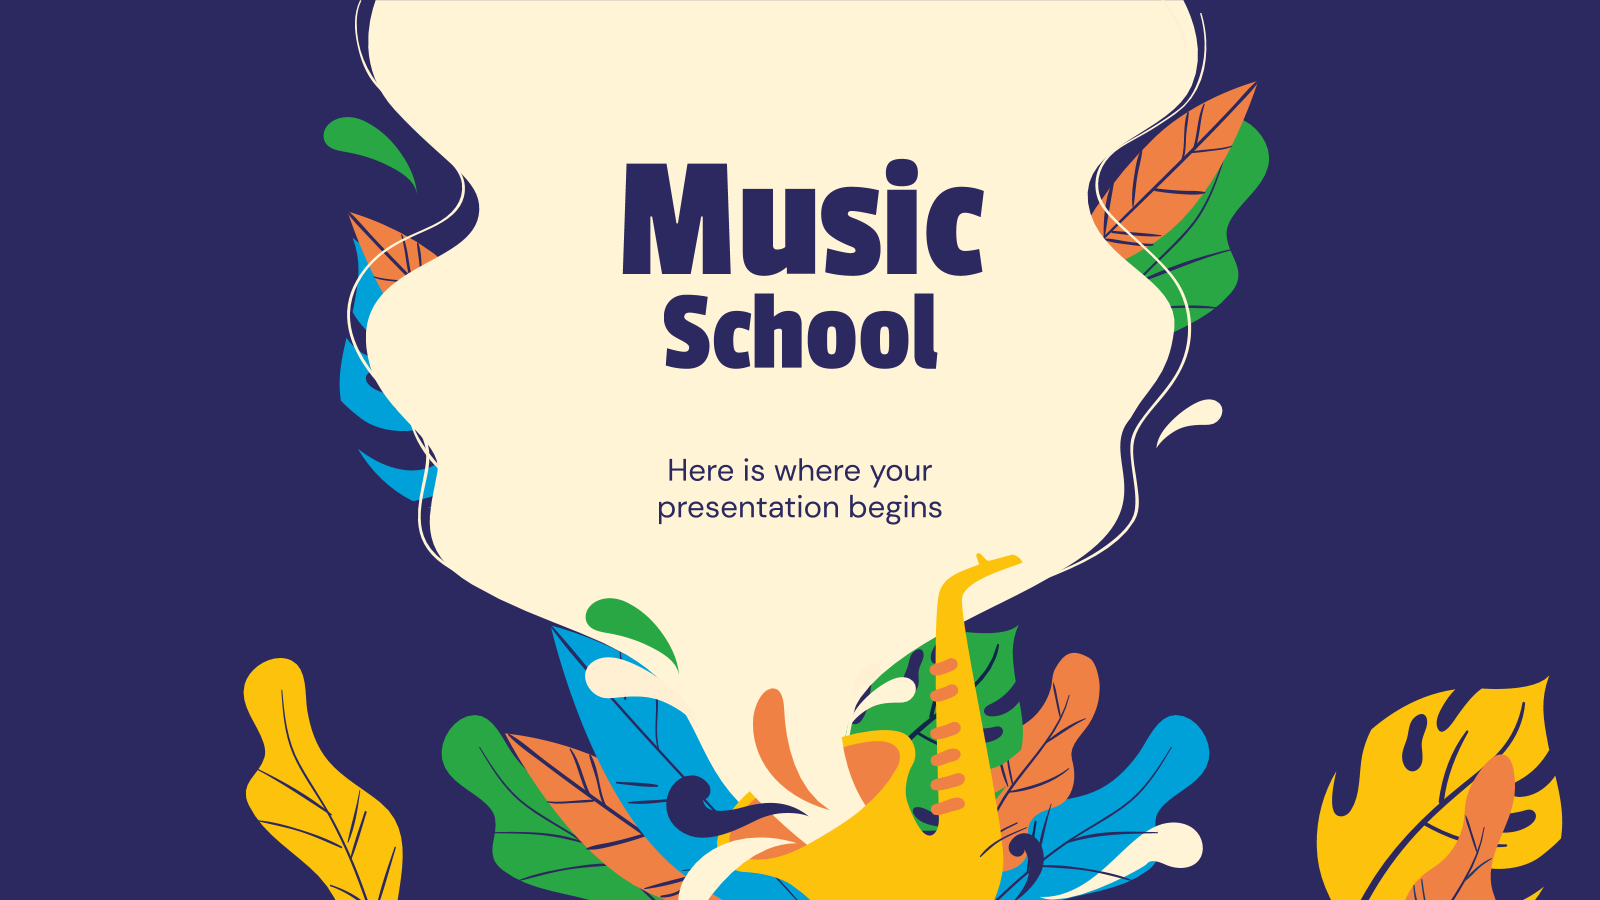 Music School presentation template